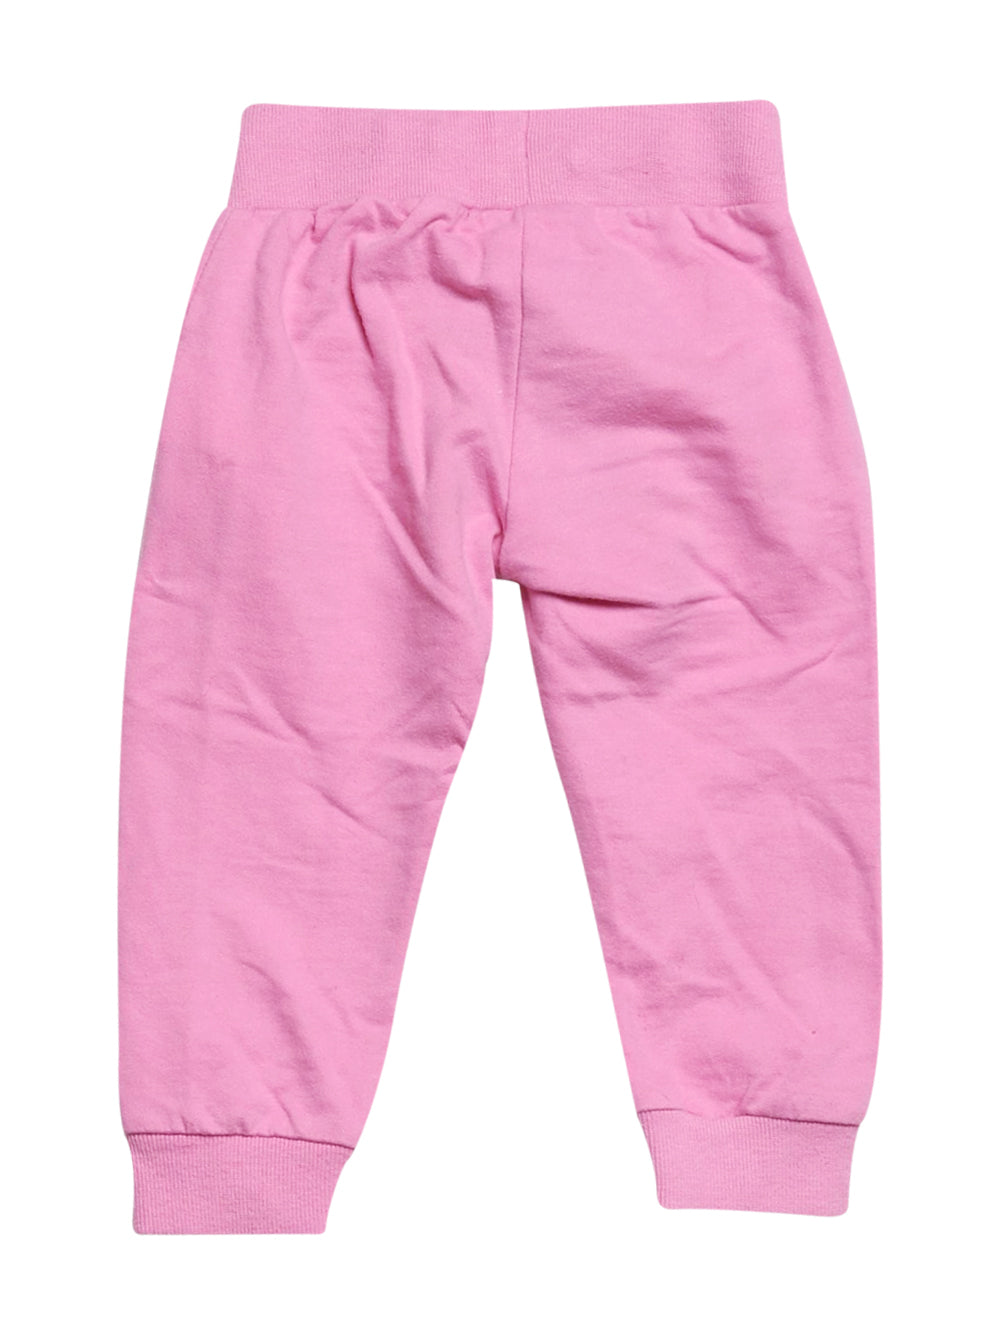 Back photo of Preloved Chicco Pink Girl's trousers - size 12-18 mths